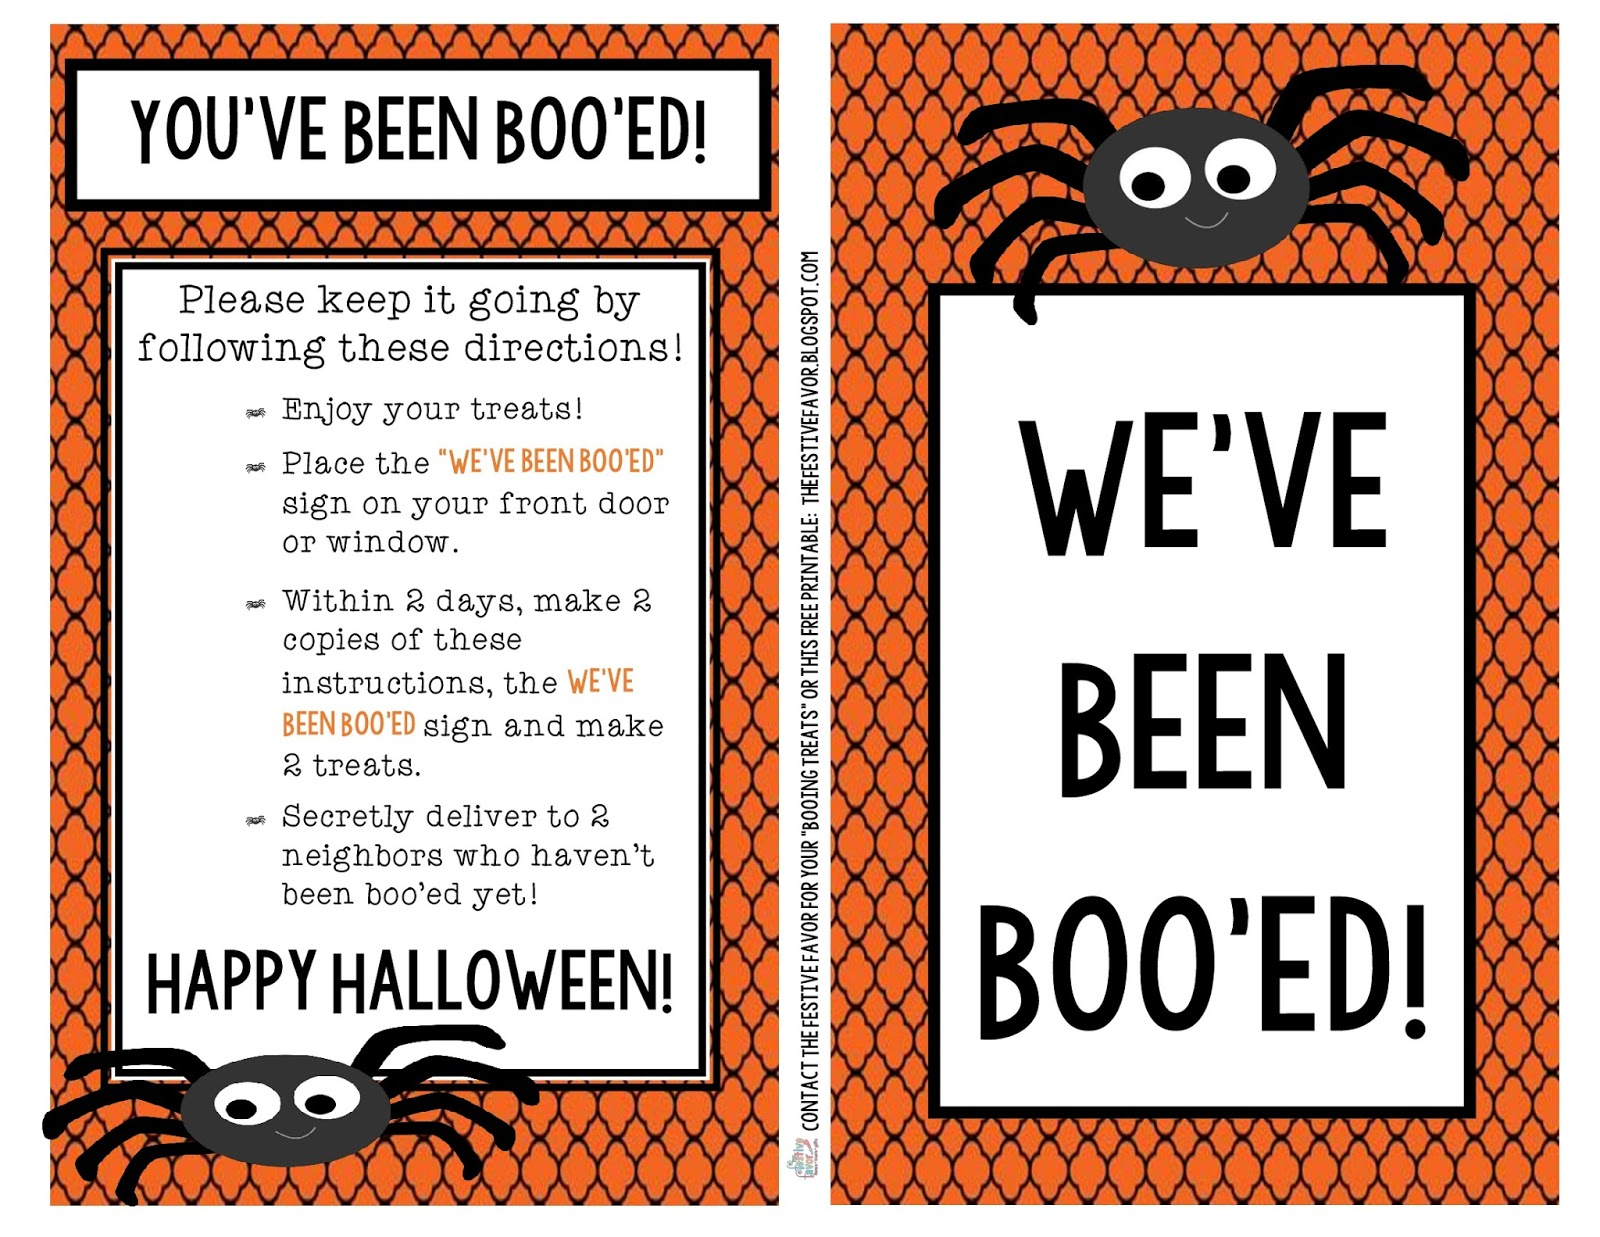 picture regarding You've Been Booed Free Printable referred to as The Festive Want: Youve Been Booed! Totally free Printable